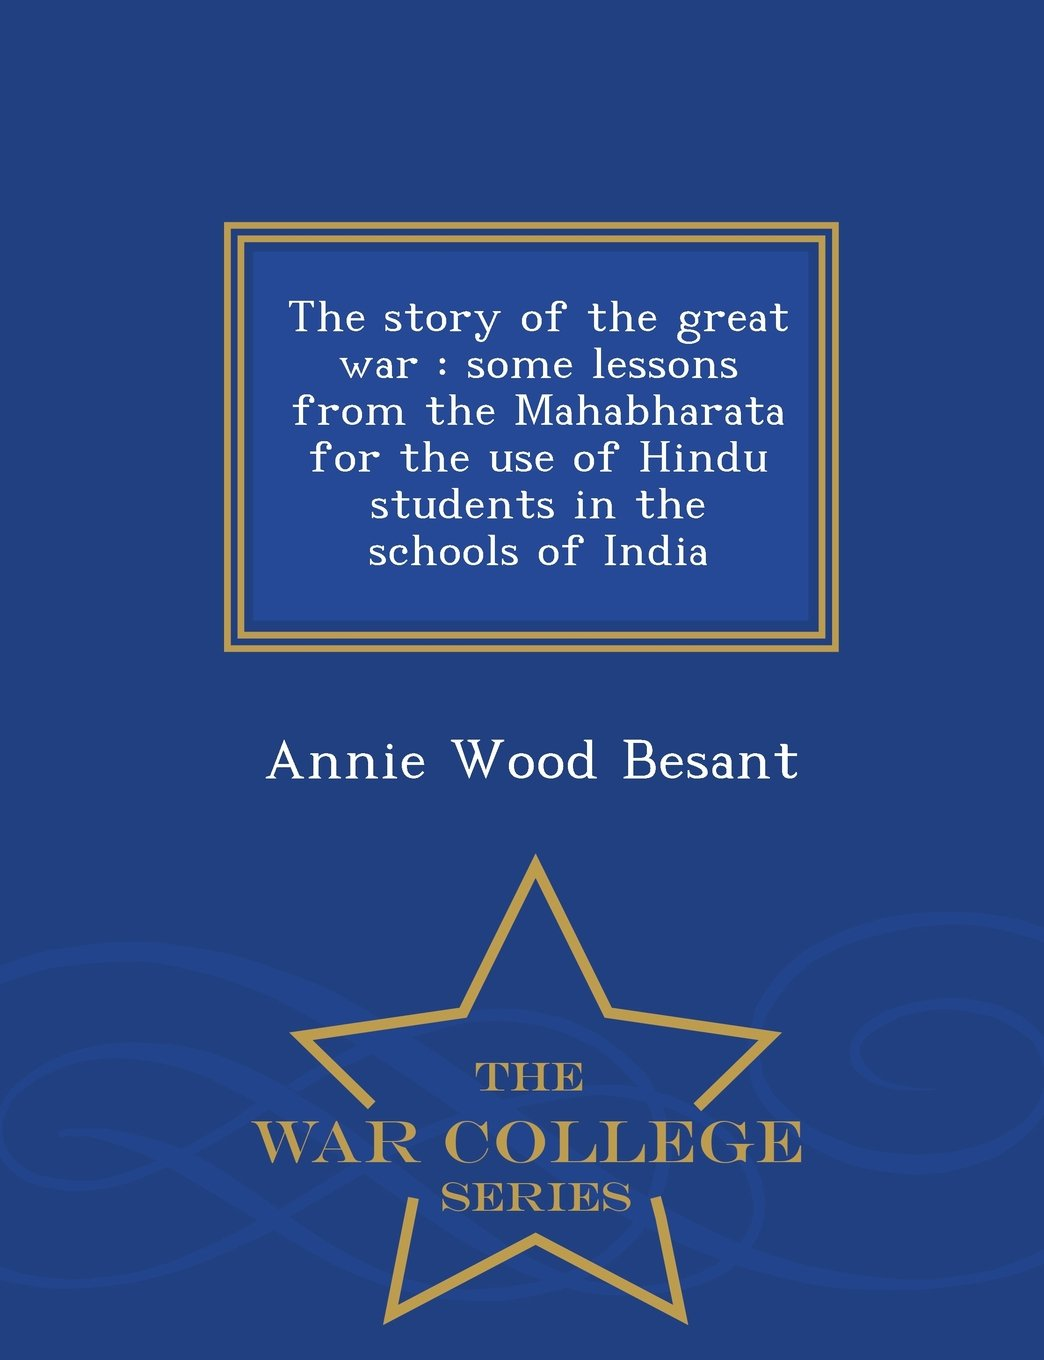 The story of the great war: some lessons from the Mahabharata for the use of Hindu students in the schools of India  - War College Series PDF